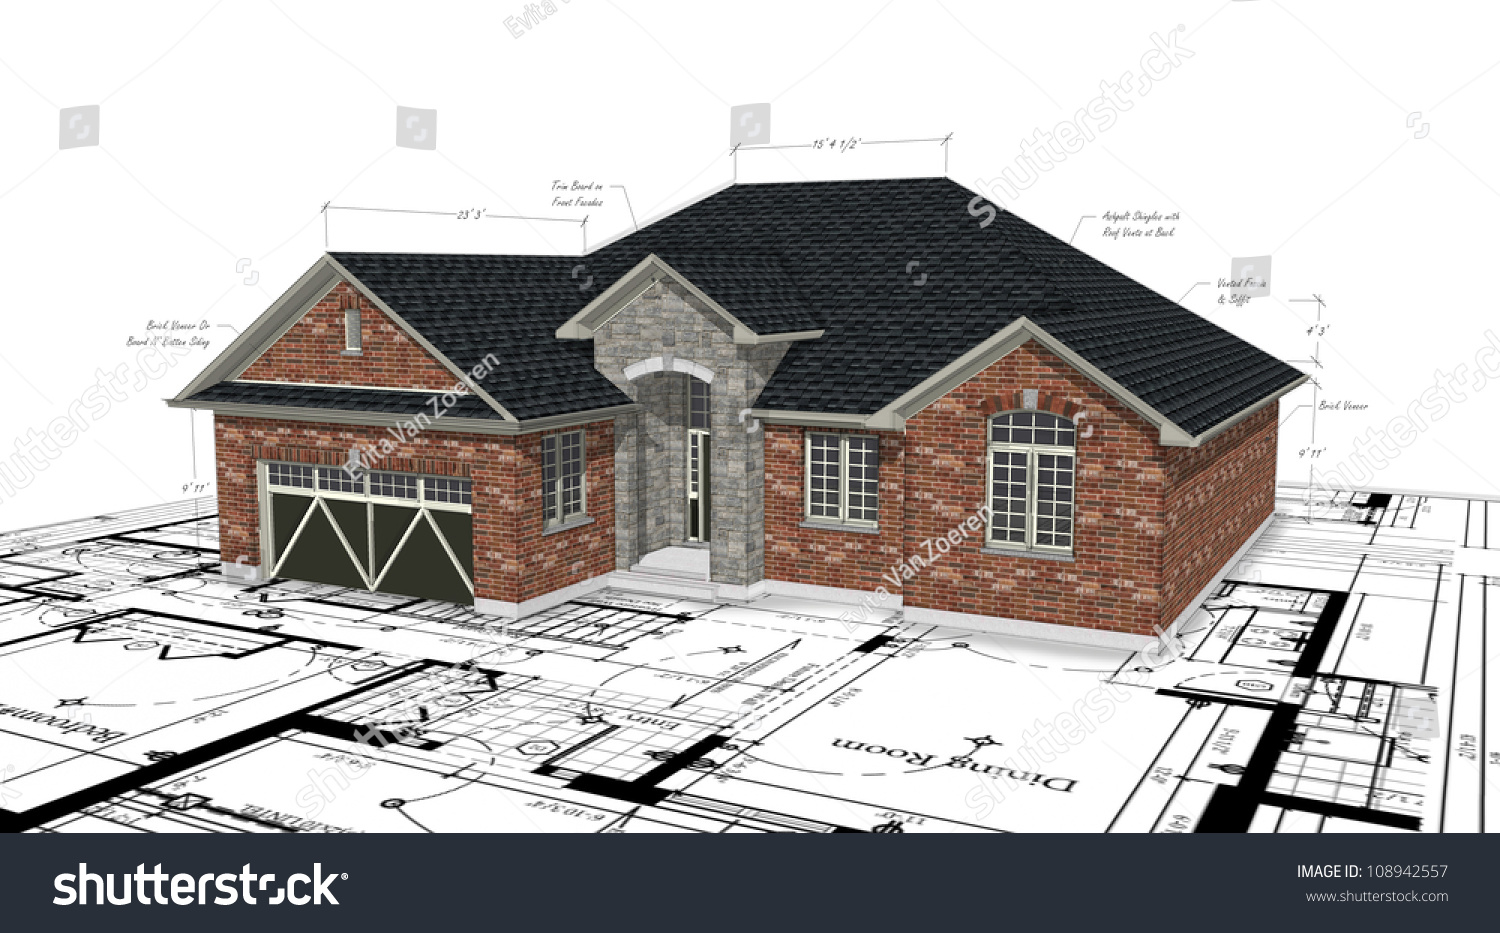 Red brick house plans stock illustration 108942557 for Brick house floor plans